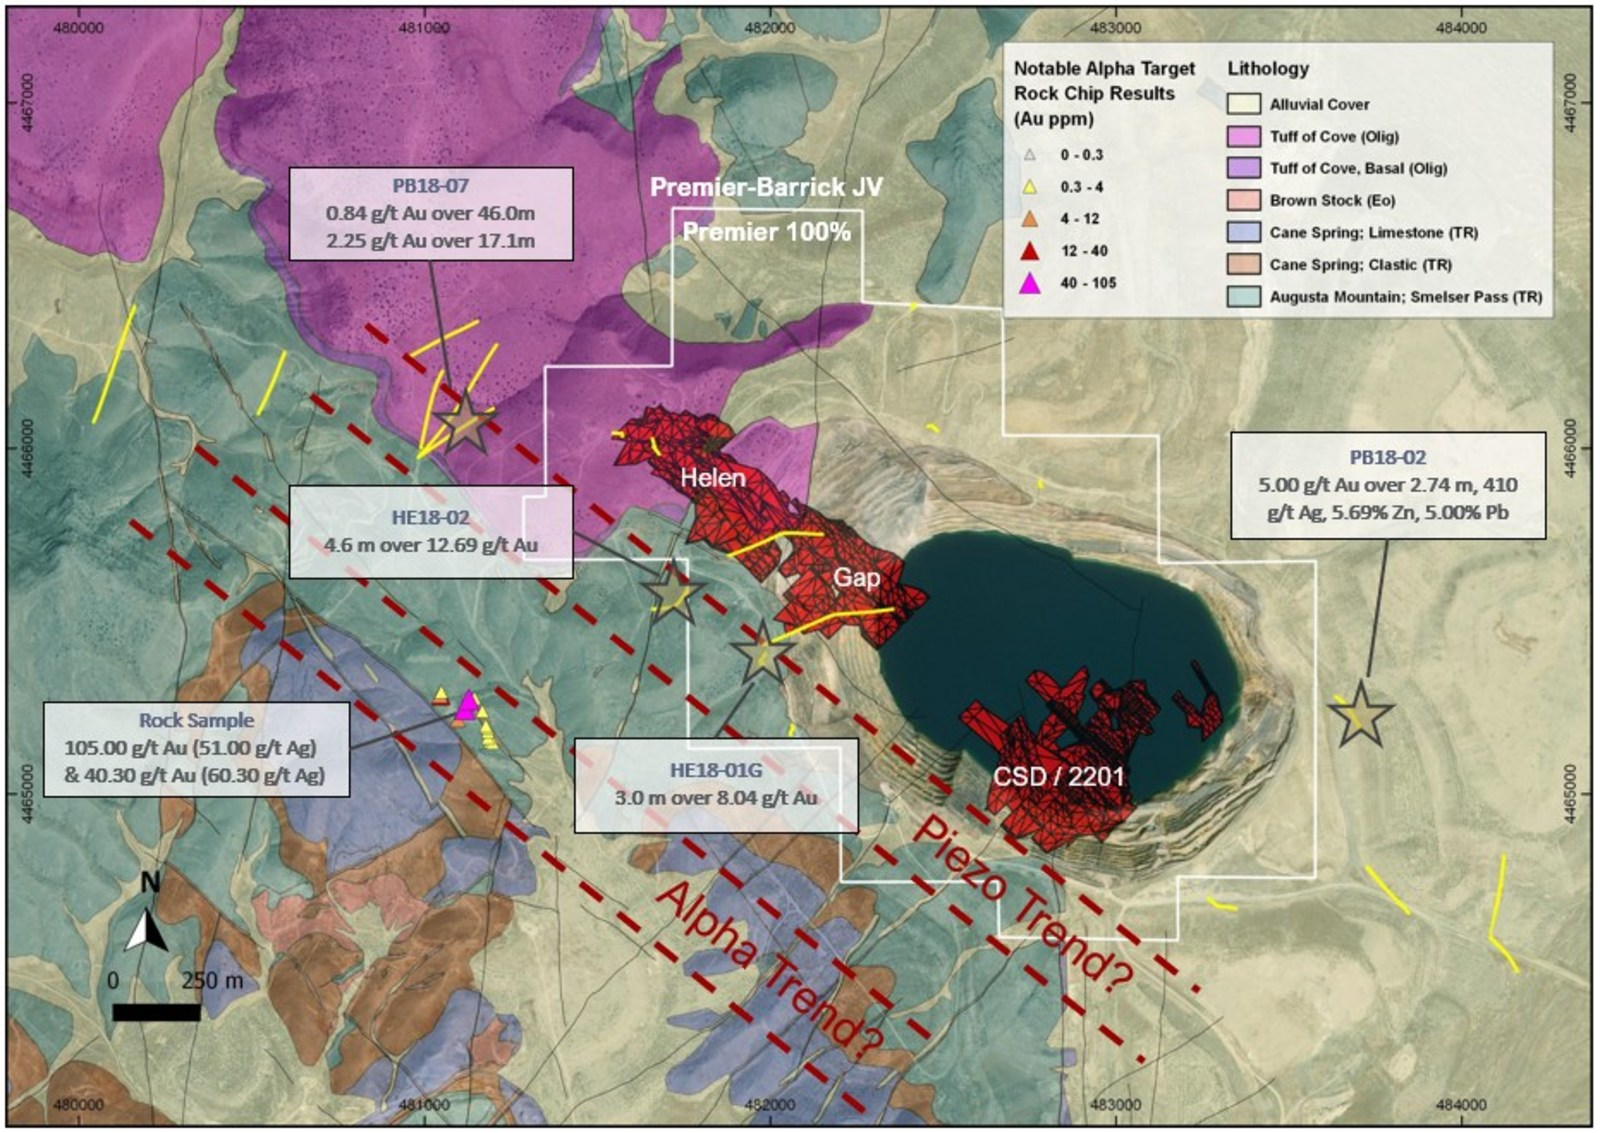 Figure 5: Geological map of the McCoy-Cove Project showing the Cove Carve Out outline and the Piezo Trend and Alpha Trend. The red mineralized zones are from the PEA. The new exploration discoveries are highlighted with a star.